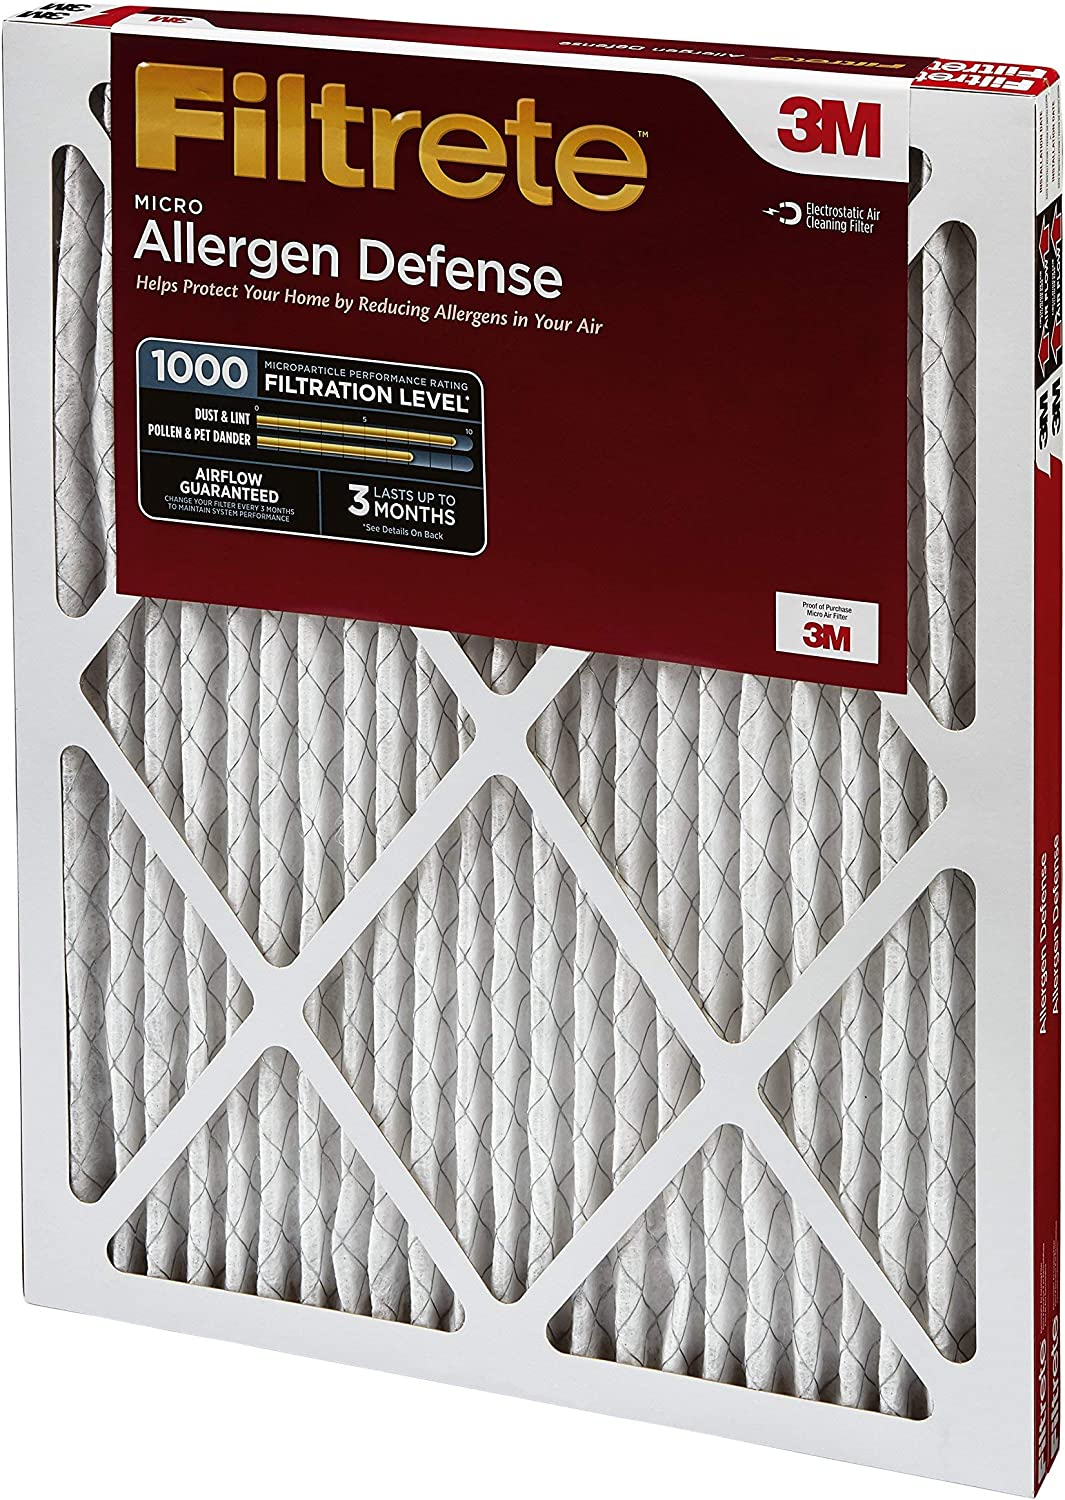 Filtrete 14x20x1 AC Furnace Air Filter Micro Allergen Defence Renewed 2-Pack MPR 1000